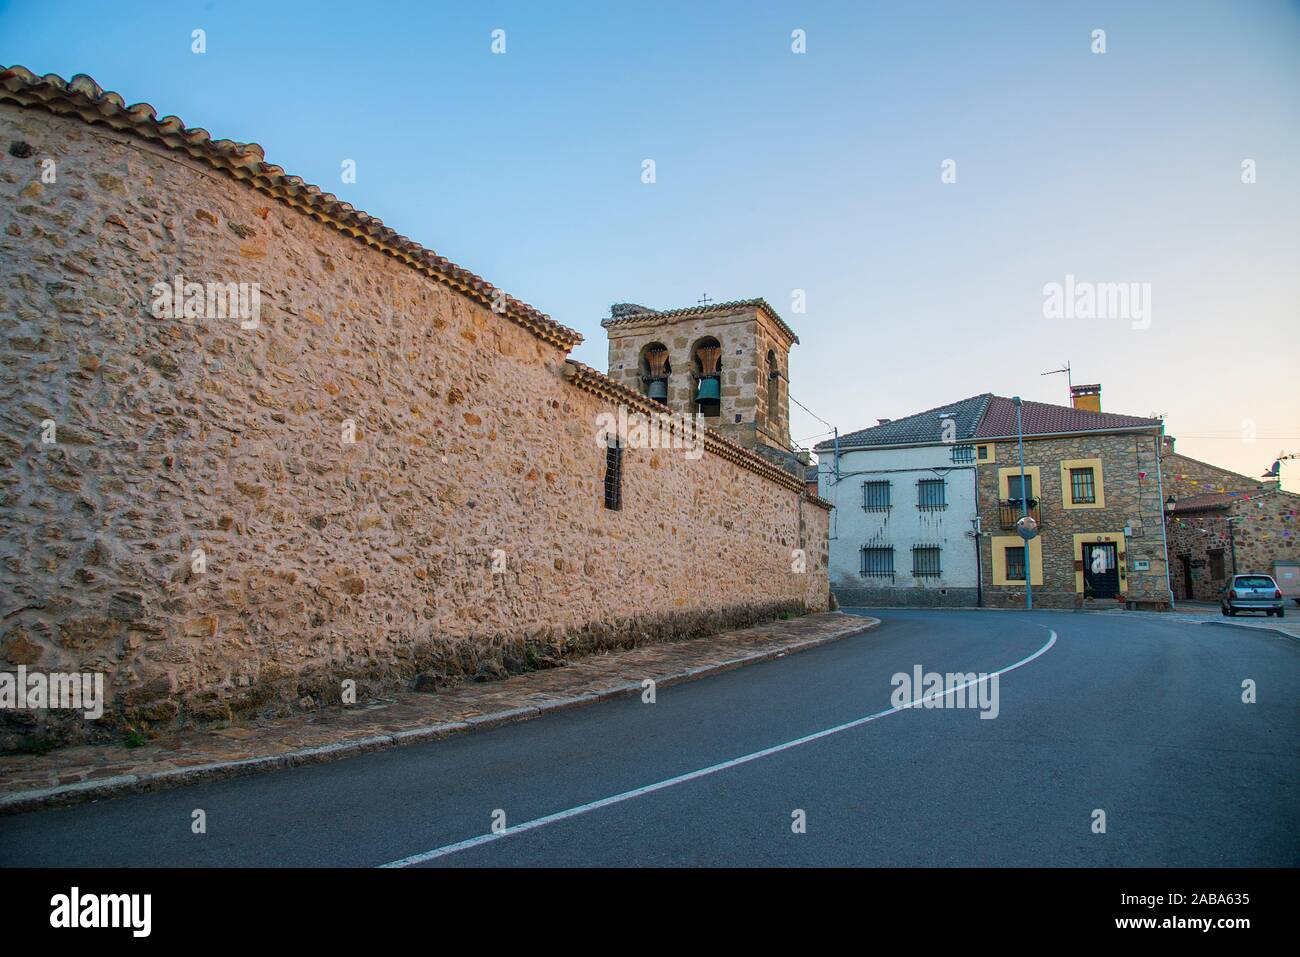 Church and street. Piñuecar, Madrid province, Spain. Stock Photo